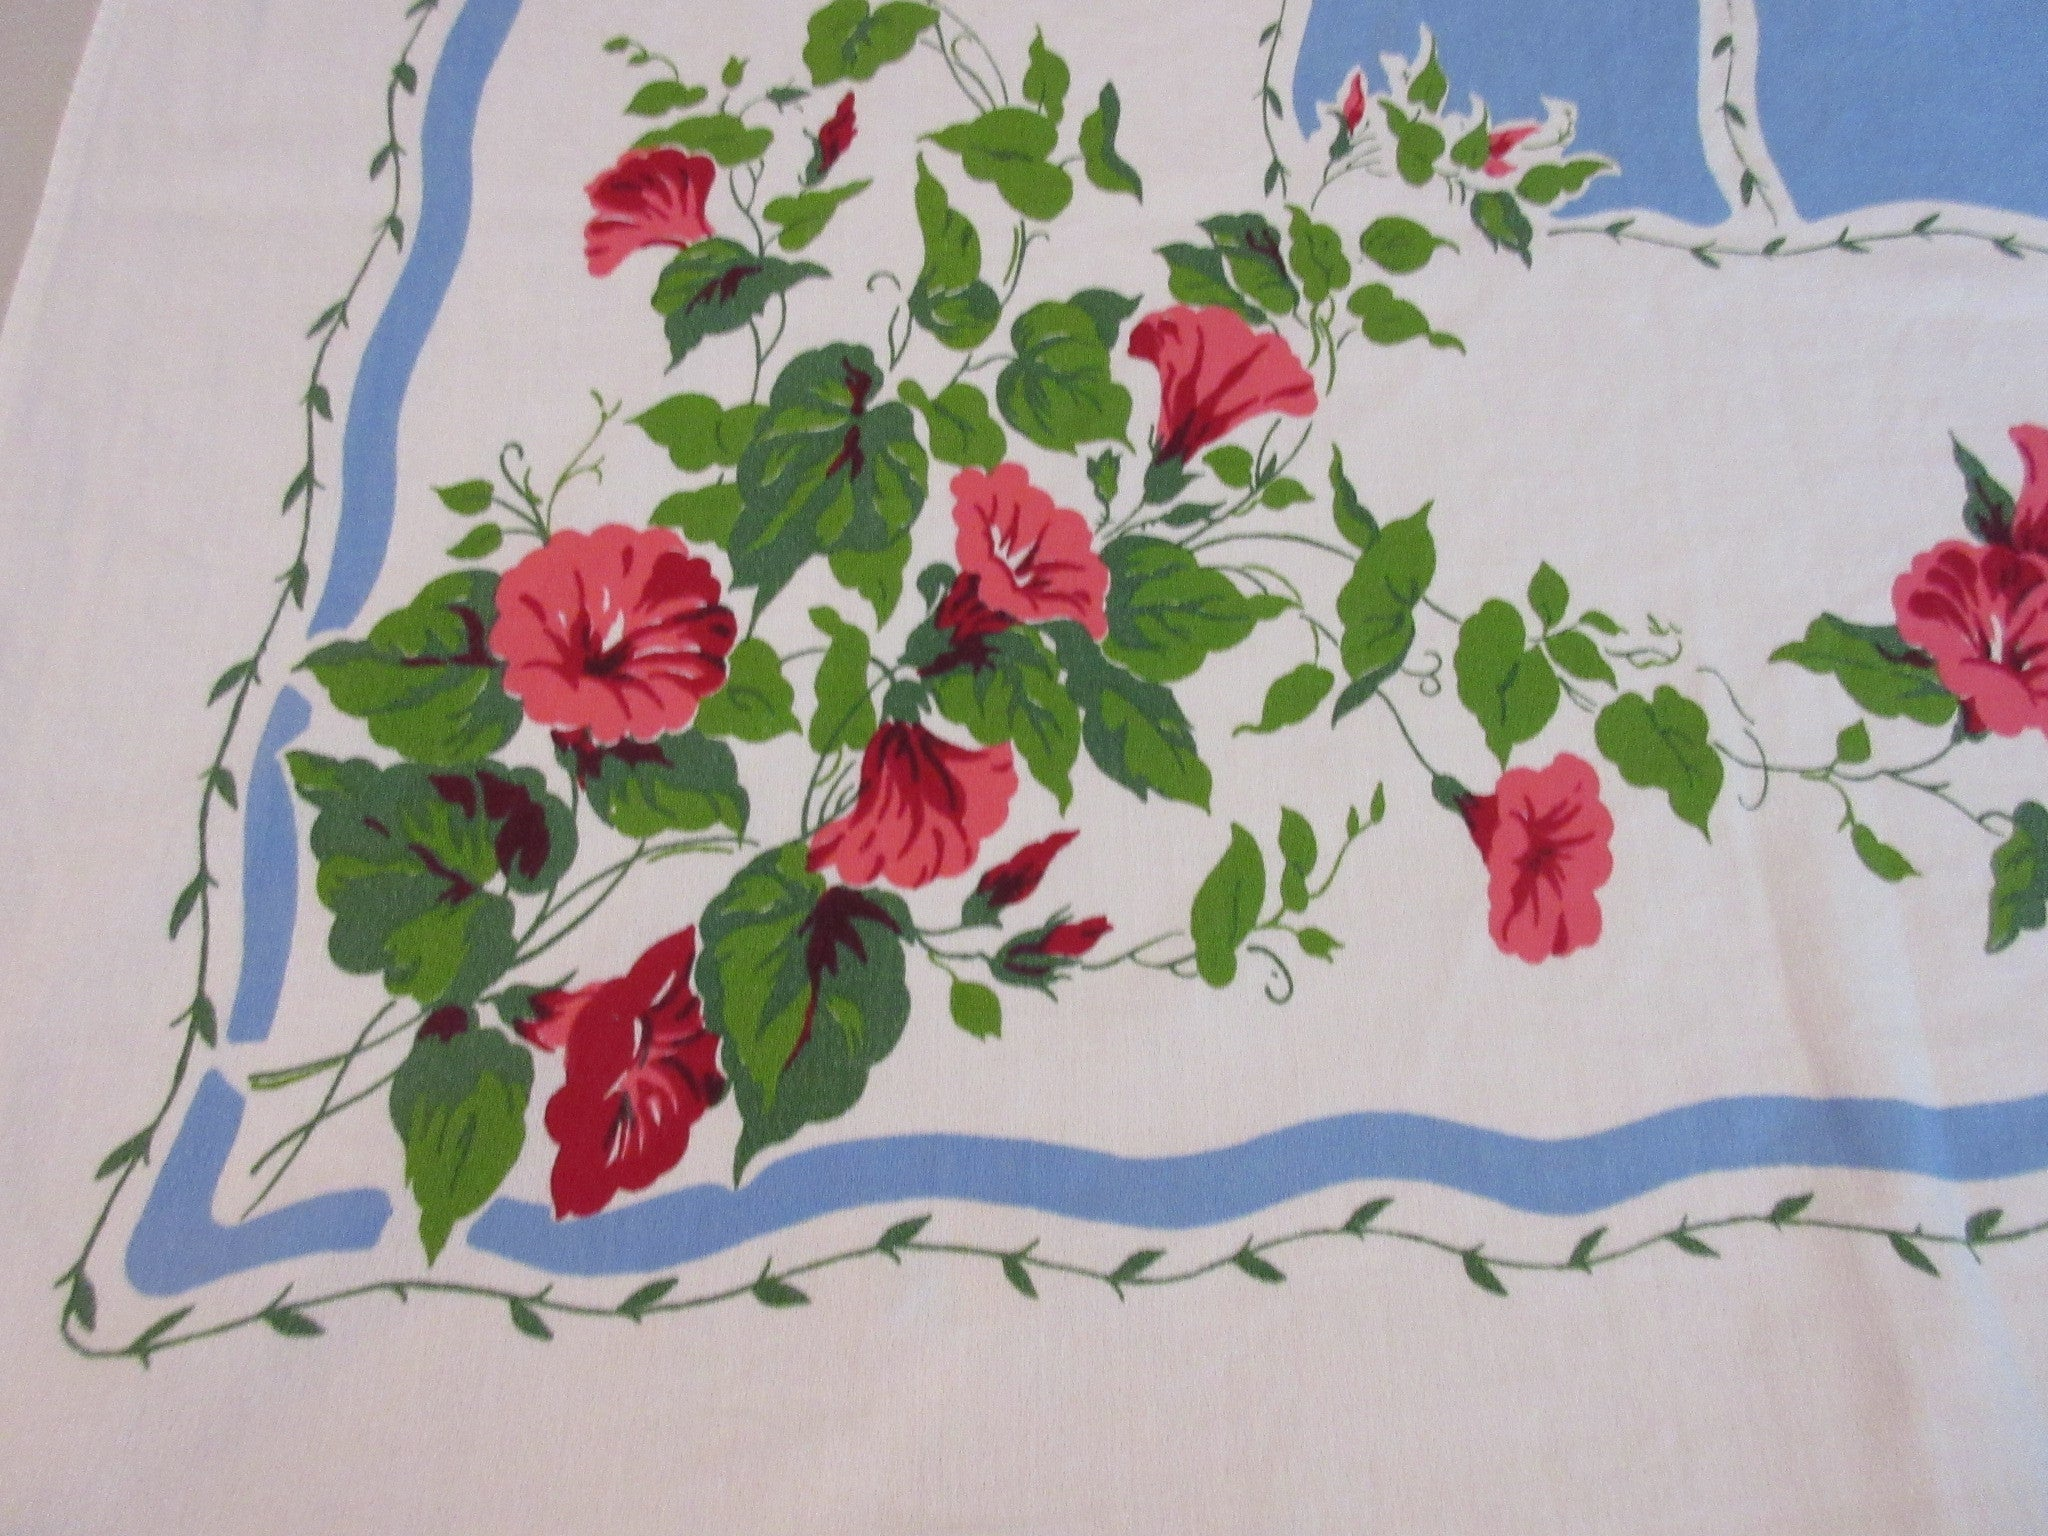 Pink Green Morning Glories on Blue Floral Vintage Printed Tablecloth (63 X 51)